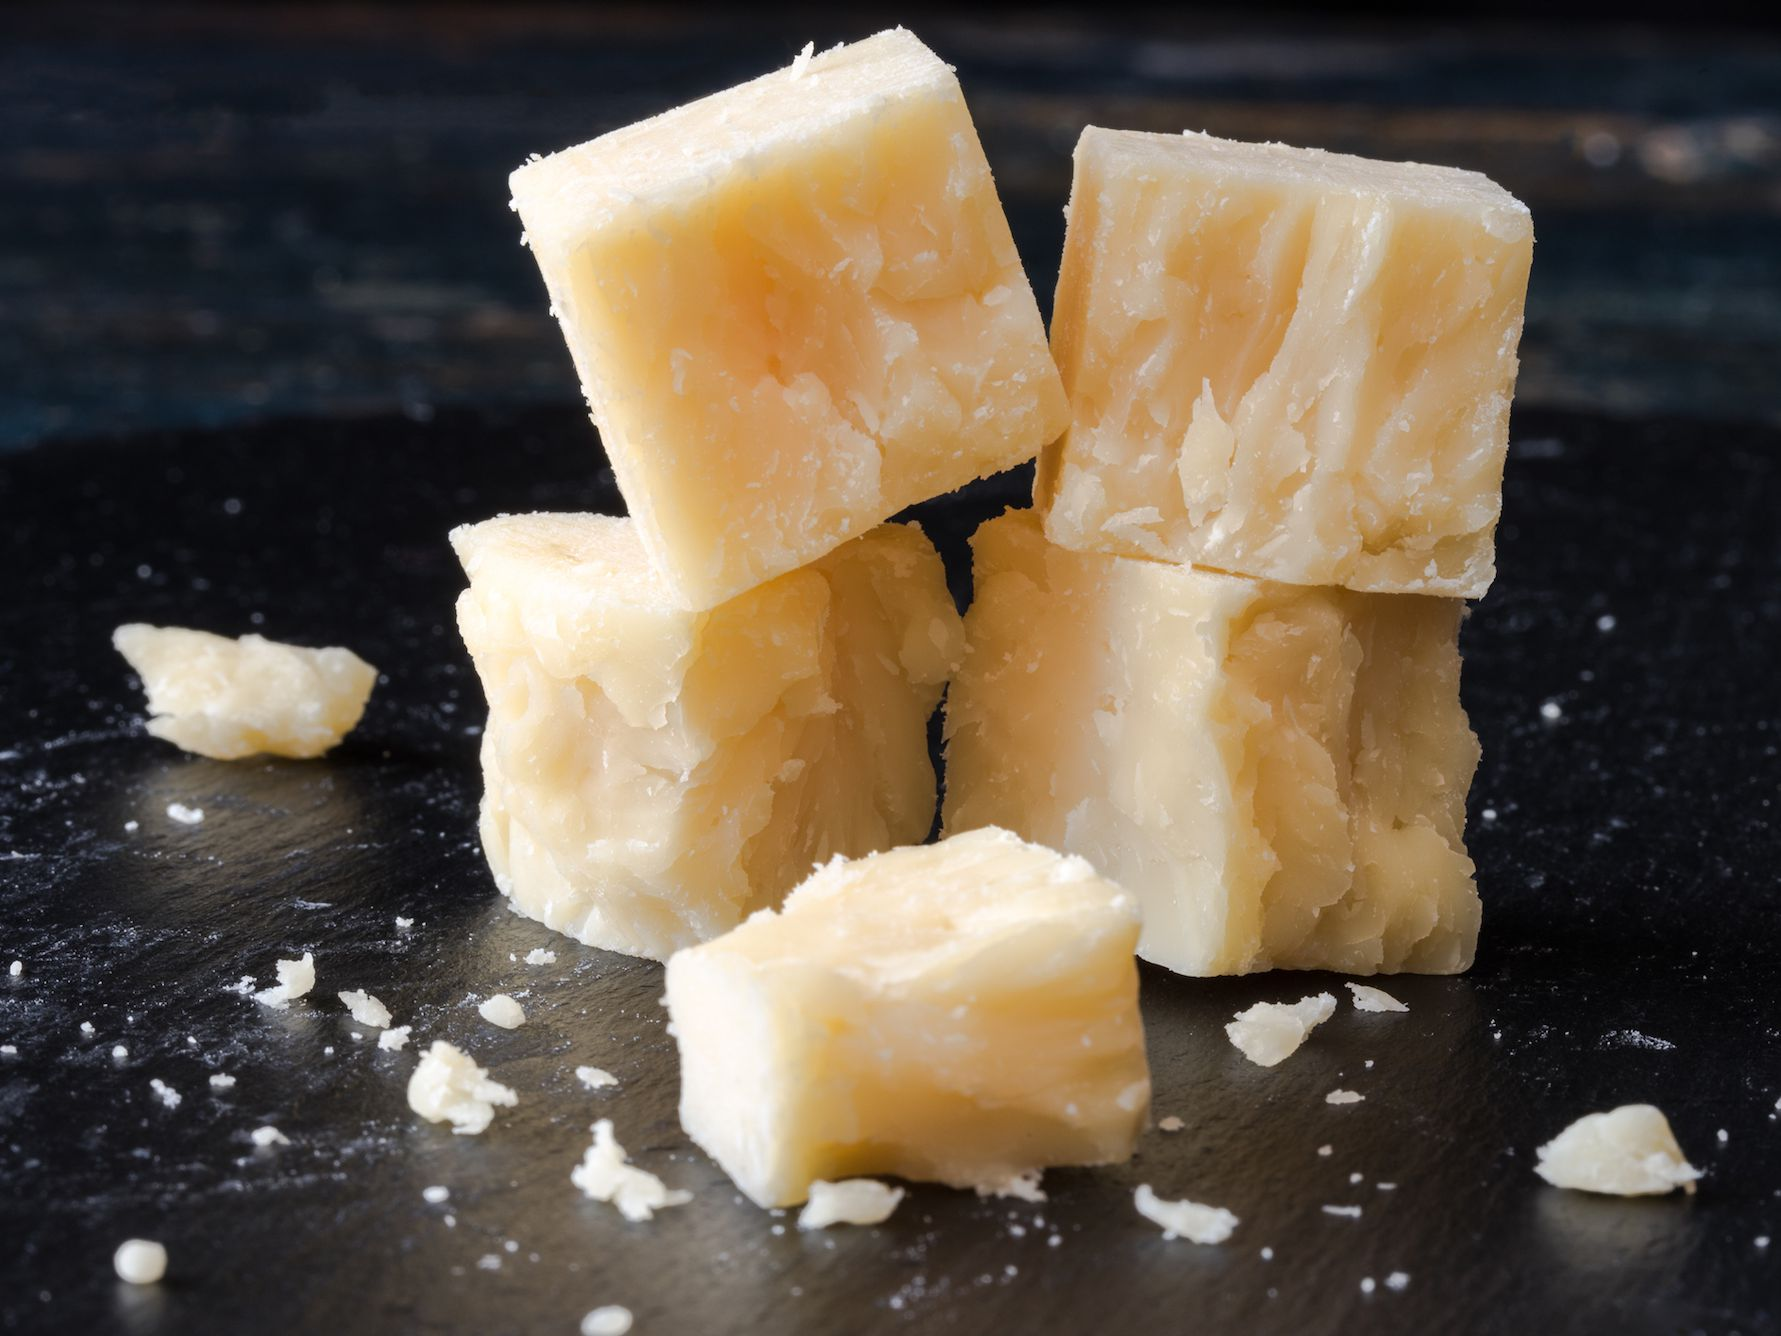 cheese ok on low fat diet?